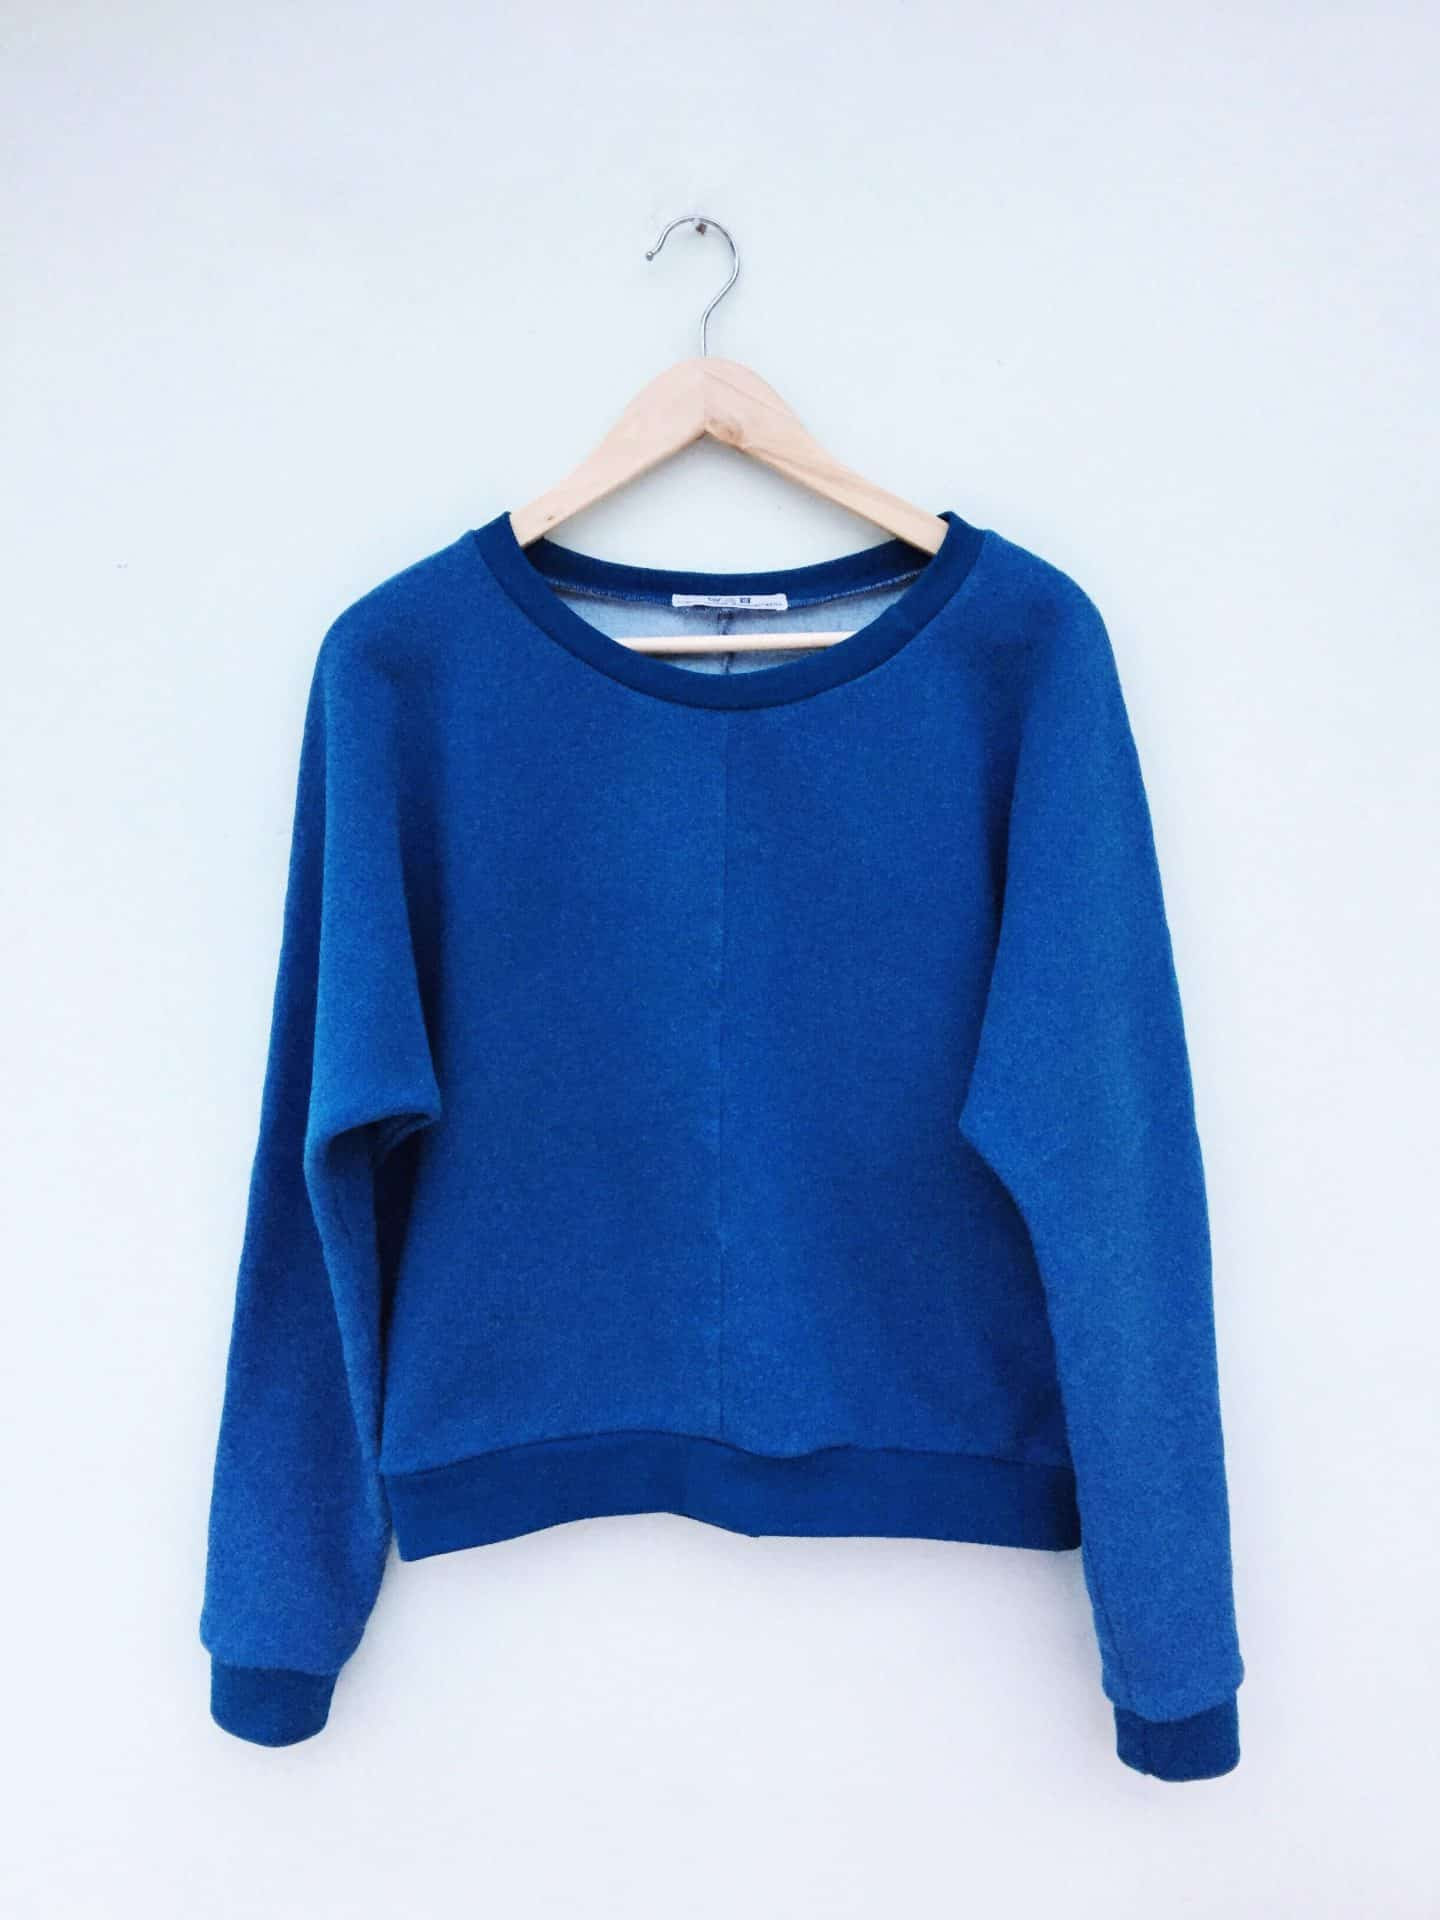 With Narrative Blue Organic Sweatshirt.